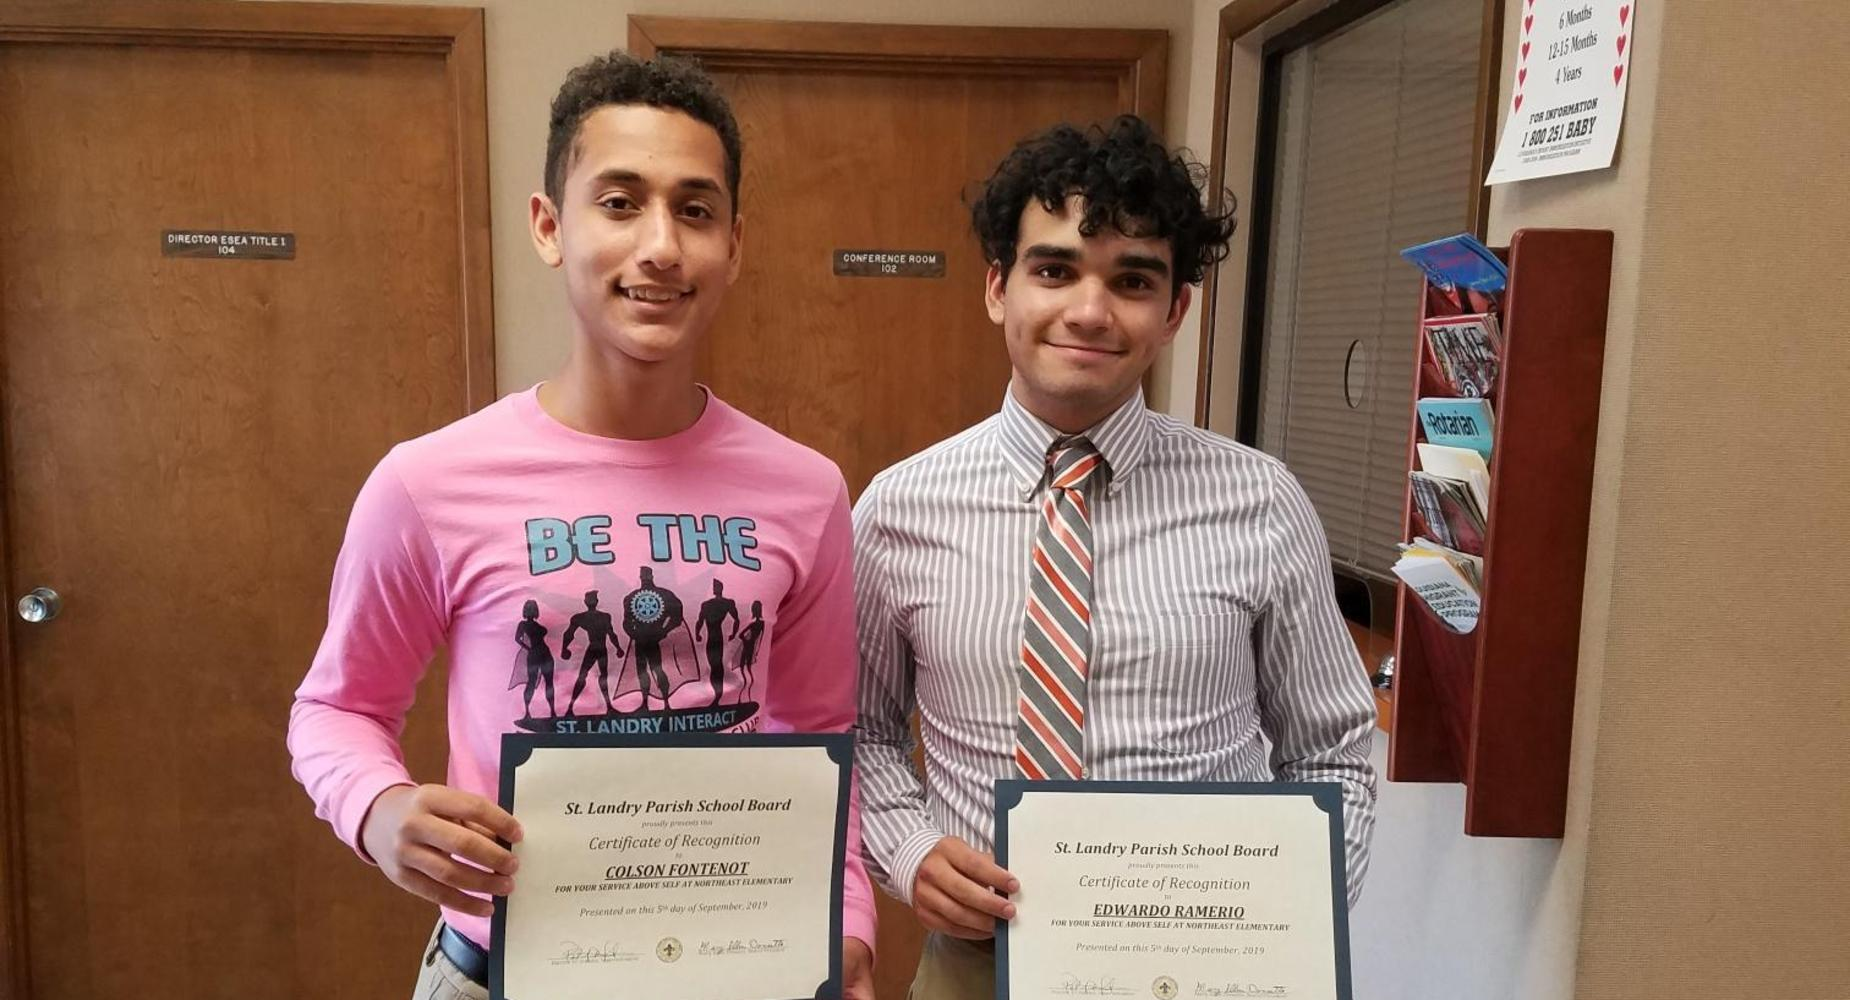 Colson Fontenot and Eddie Ramirez are recognized at the school board for